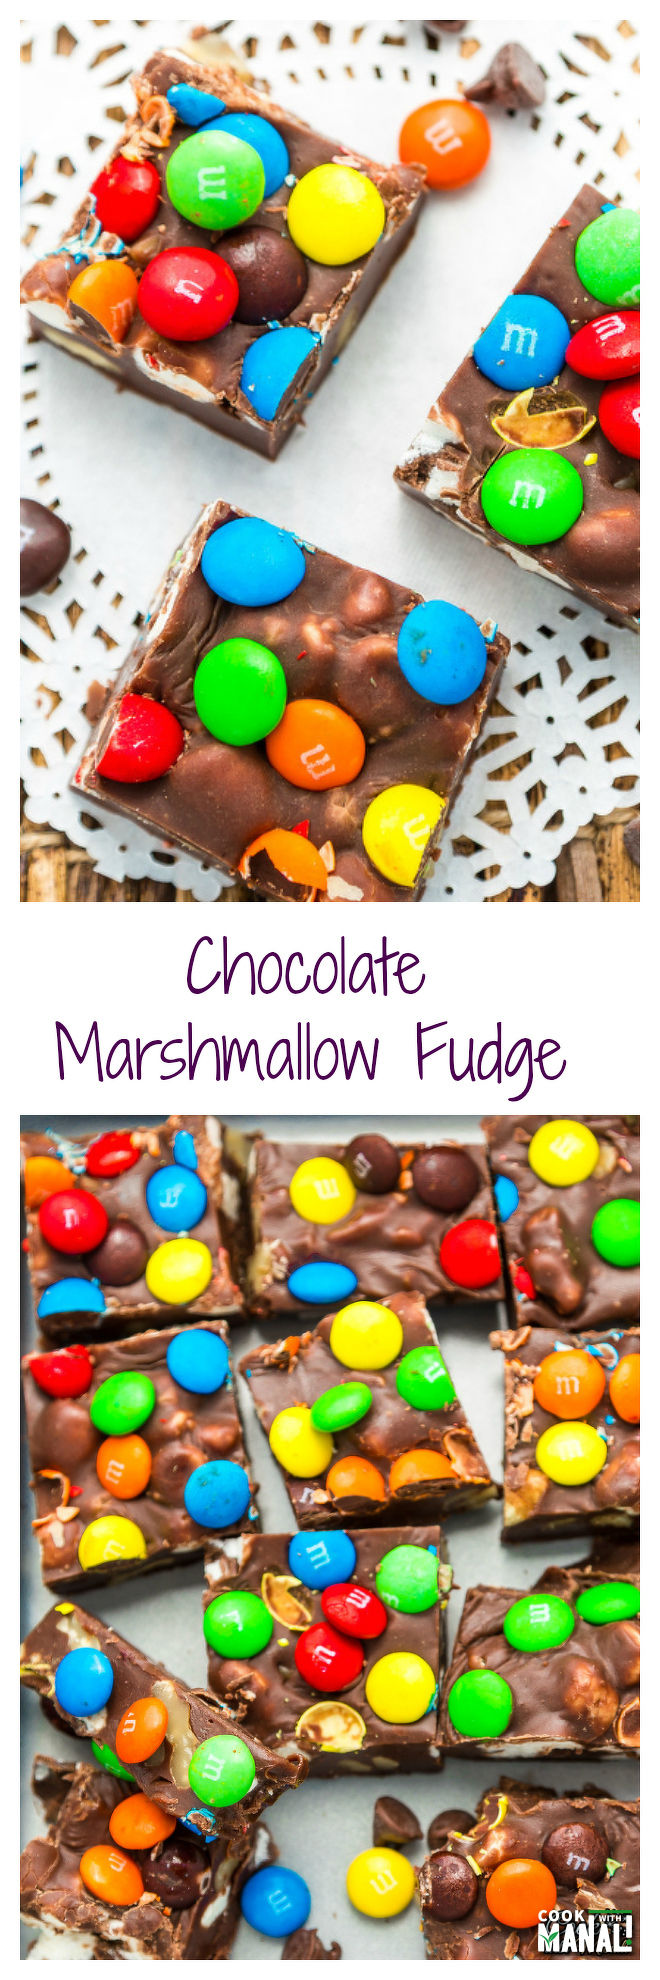 Chocolate-Marshmallow-Fudge-Collage